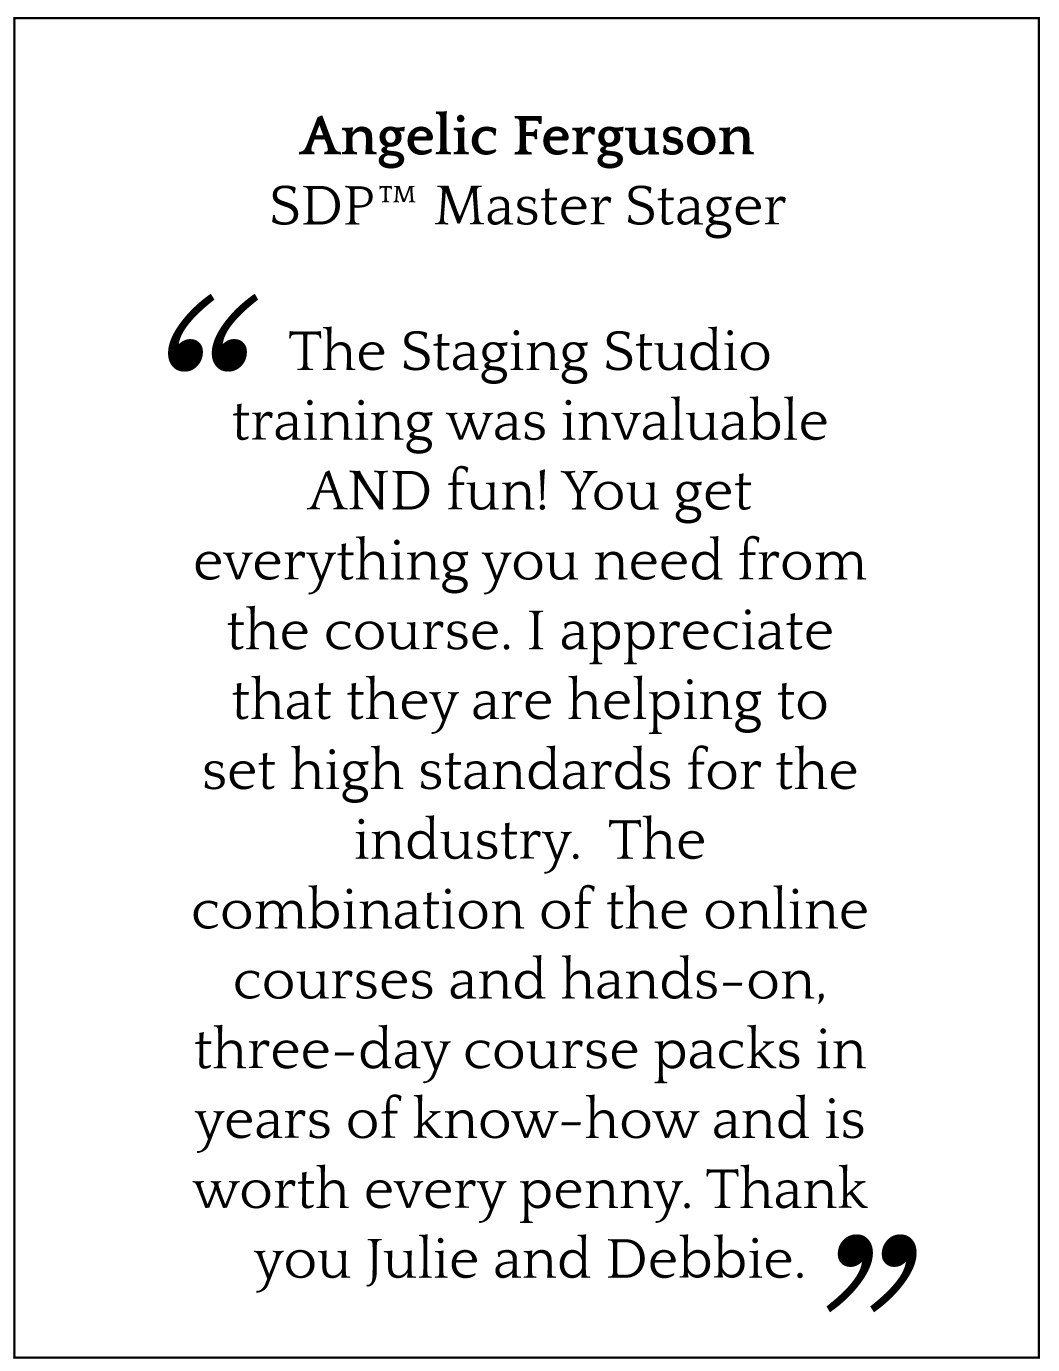 The Staging Studio training was invaluable AND fun! You get everything you need from the course. I appreciate that they are helping to set high standards for the industry.  The combination of the online courses and hands-on, three-day course packs in years of know-how and is worth every penny. Thank you Julie and Debbie.